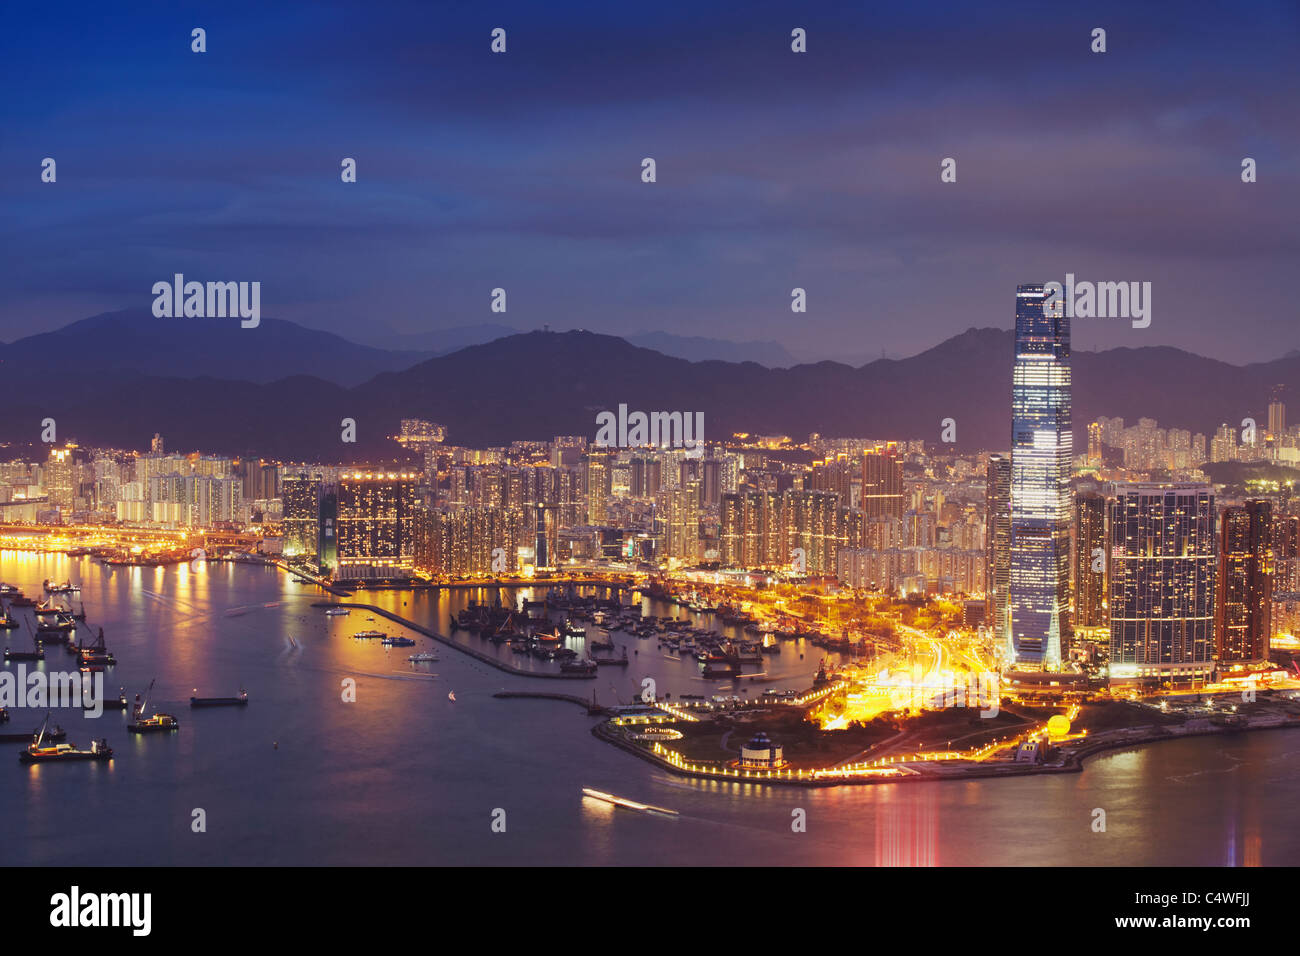 View of International Commerce Centre (ICC) and West Kowloon at dusk, Hong Kong, China - Stock Image